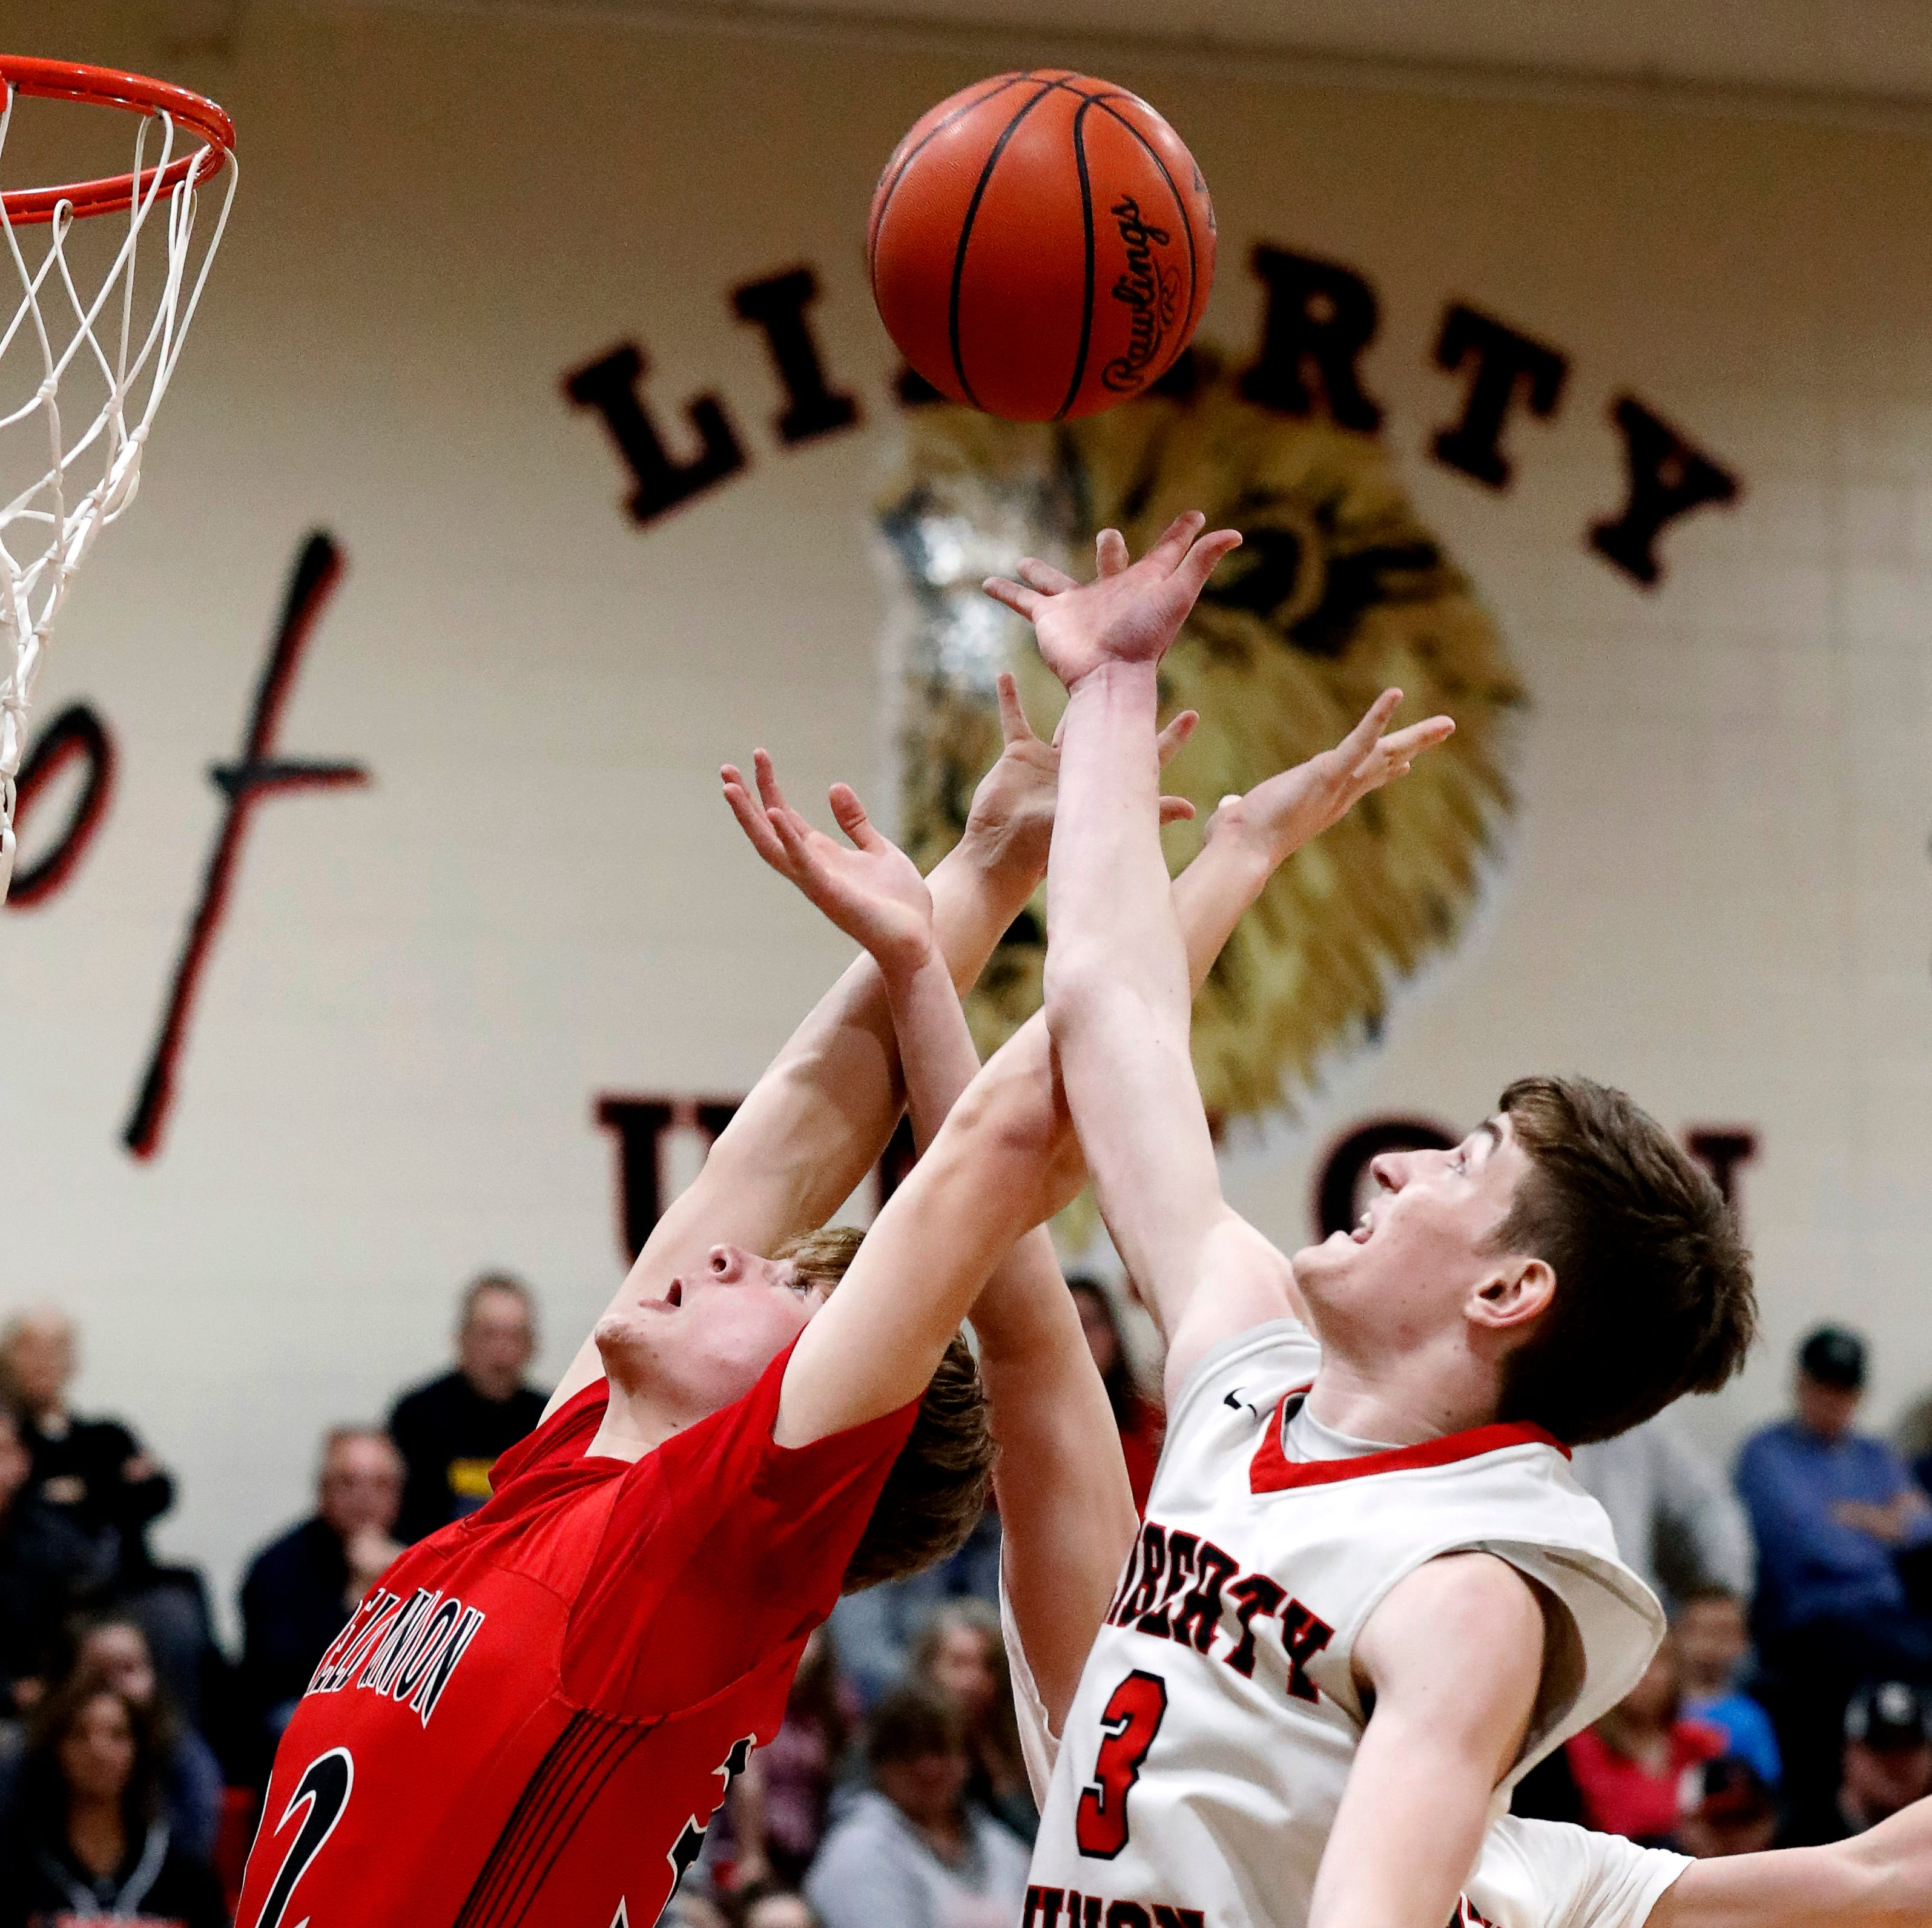 Fairfield Union's sizzling start too much for Lions to overcome